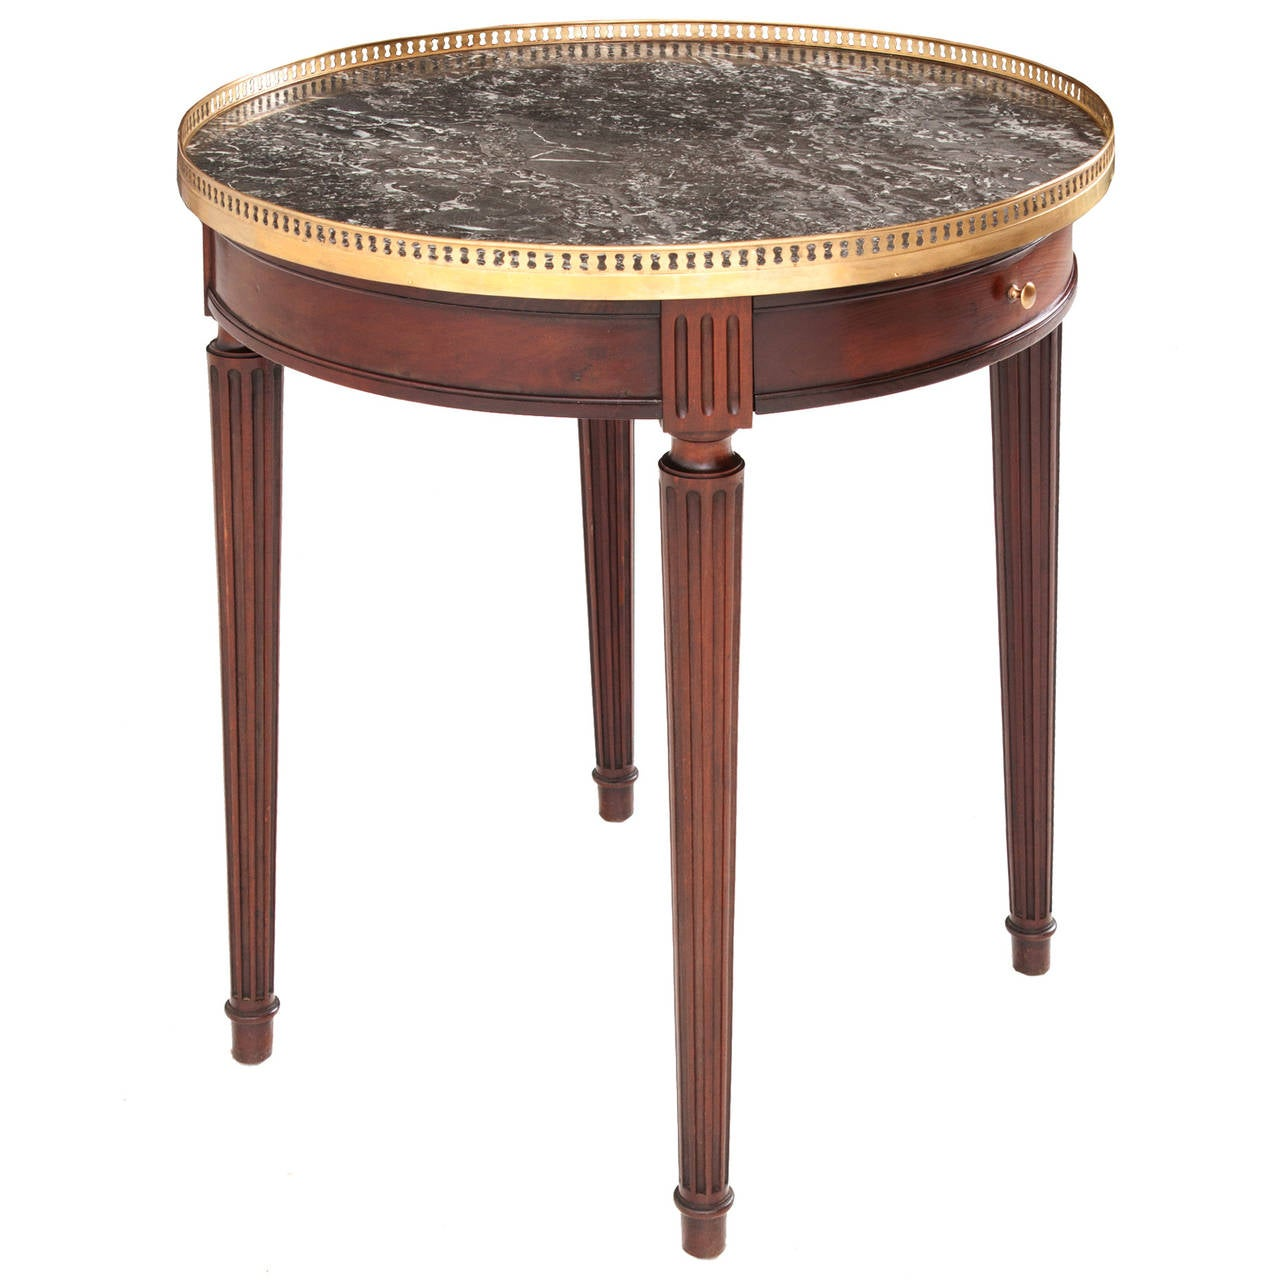 french 19th century louis xvi gueridon table at 1stdibs. Black Bedroom Furniture Sets. Home Design Ideas